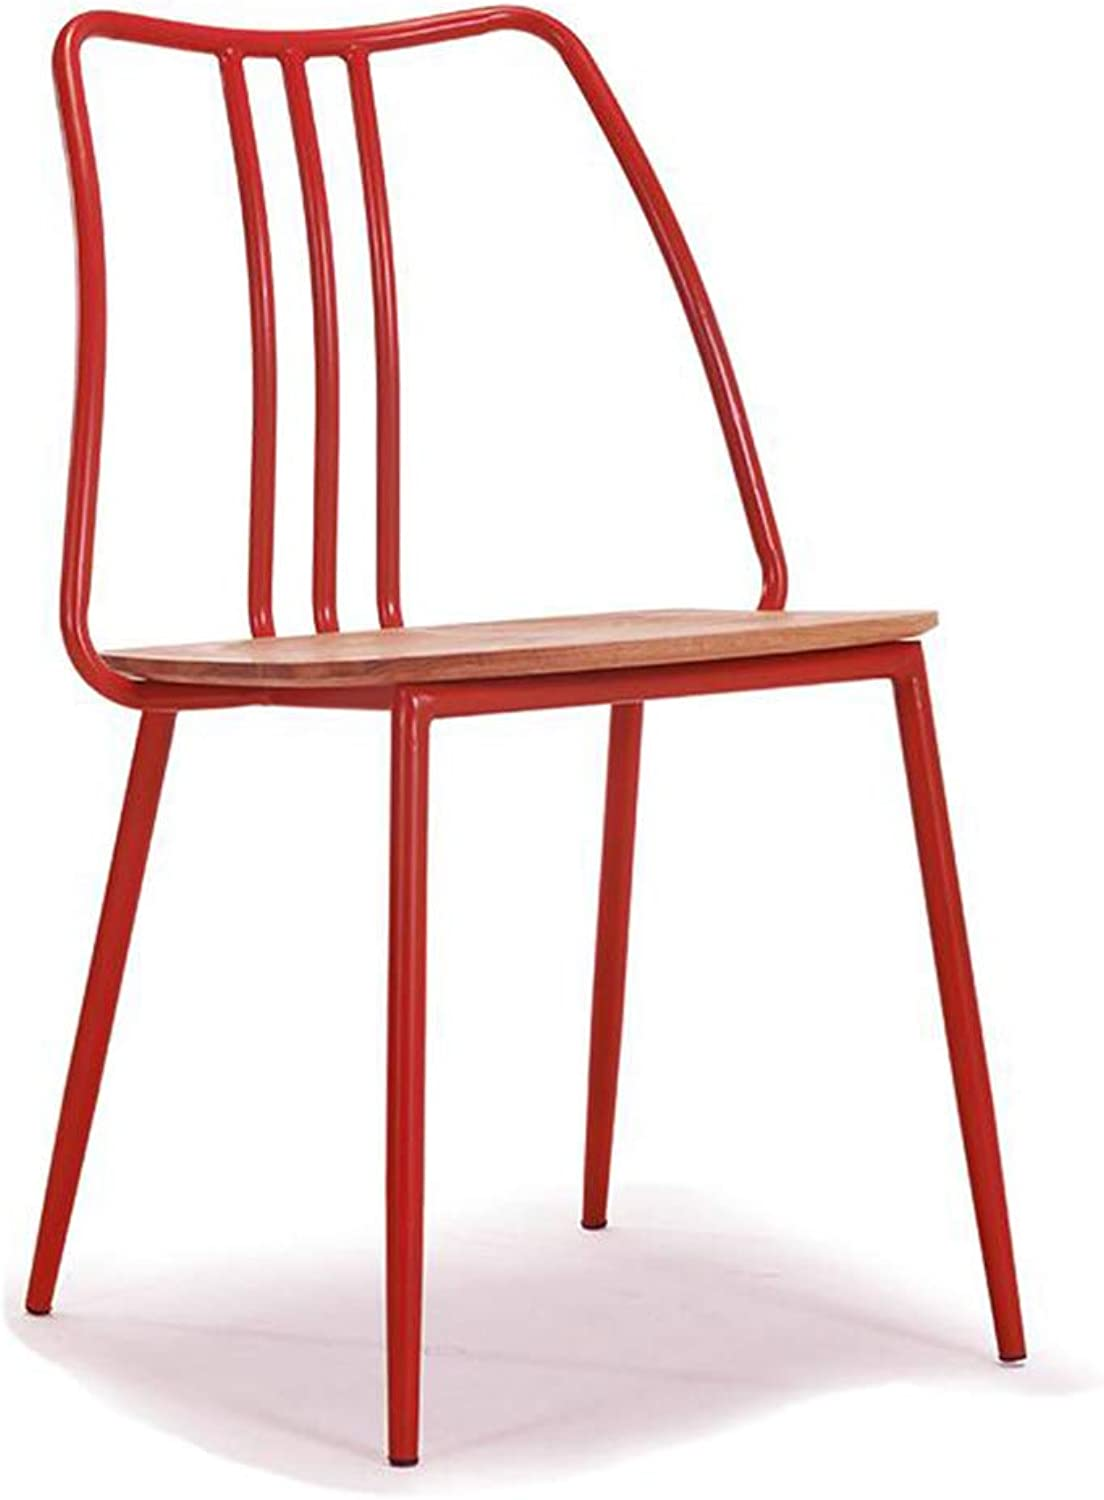 Chair Small Seat Simple Creative Chair Stool Wrought Iron Home Living Room Retro Lounge Chair Dining Chair (color   RED)